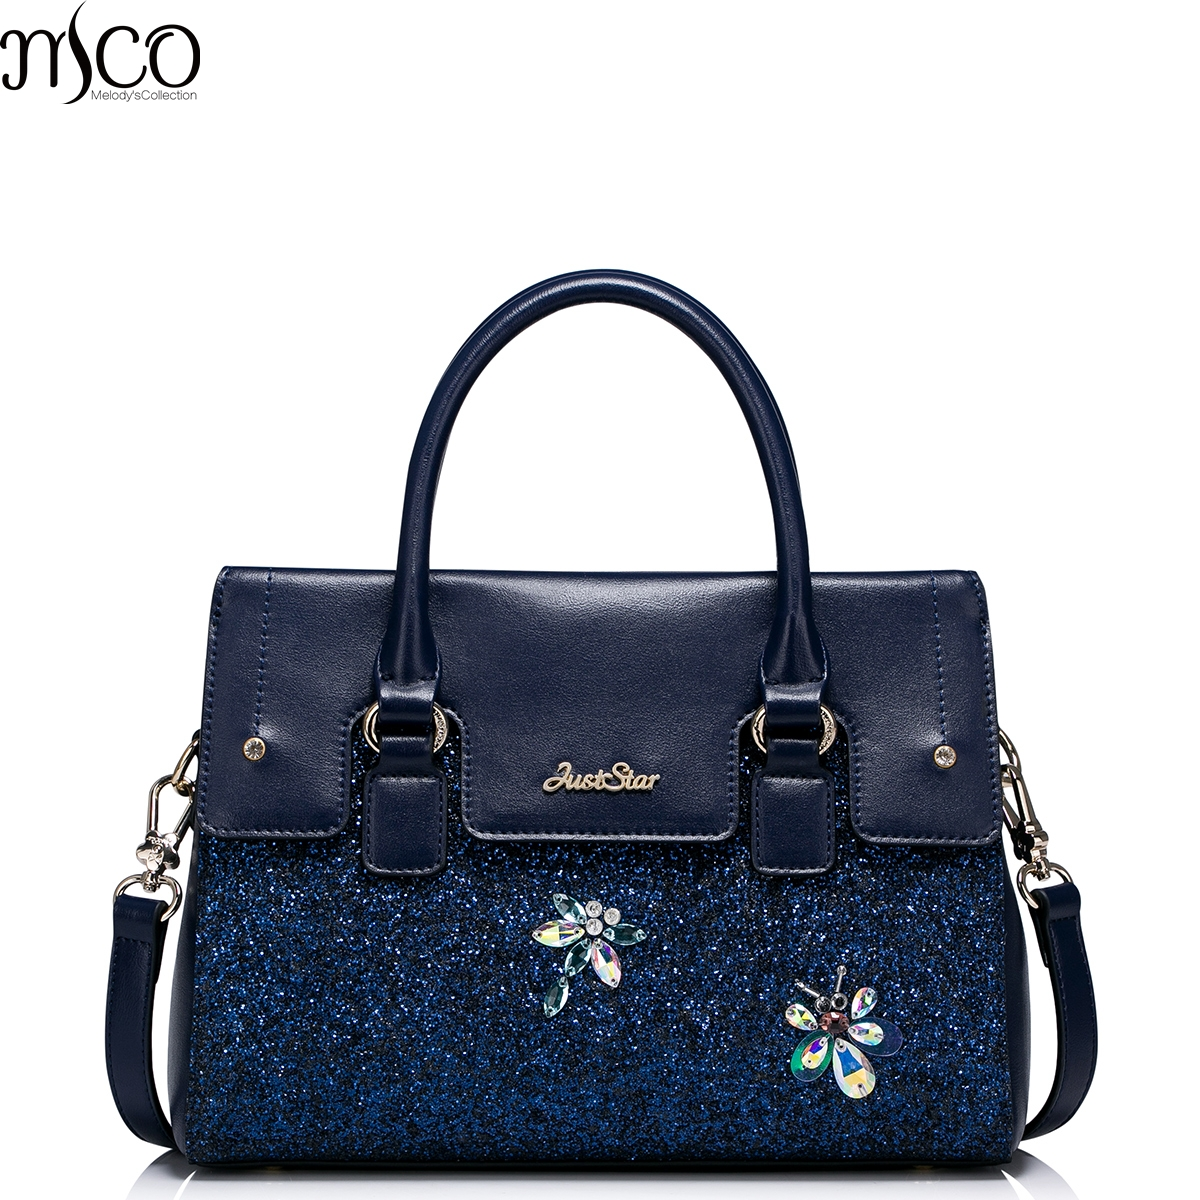 2017 Luxury Brand Design Braccialini Evening Tote Handbag Diamonds Dragonfly Shoulder Bags For Women Pu Leather Crossbody Bag In Top Handle From